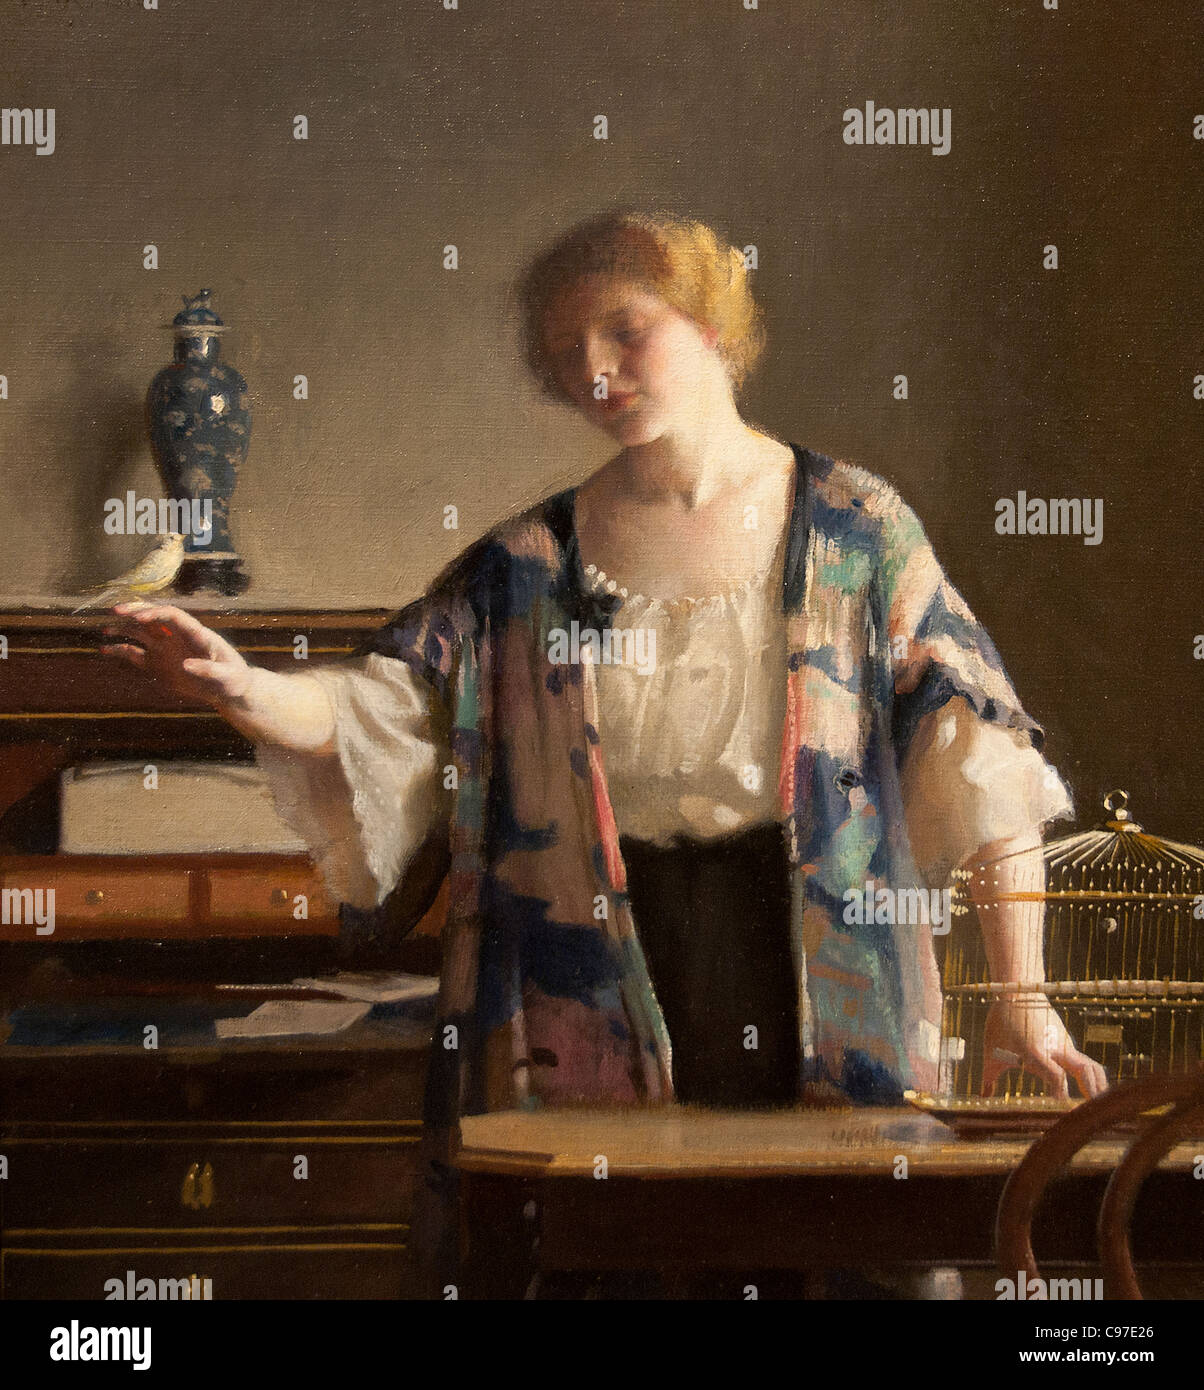 The Canary 1913 by William MCGregor Paxton American - Stock Image